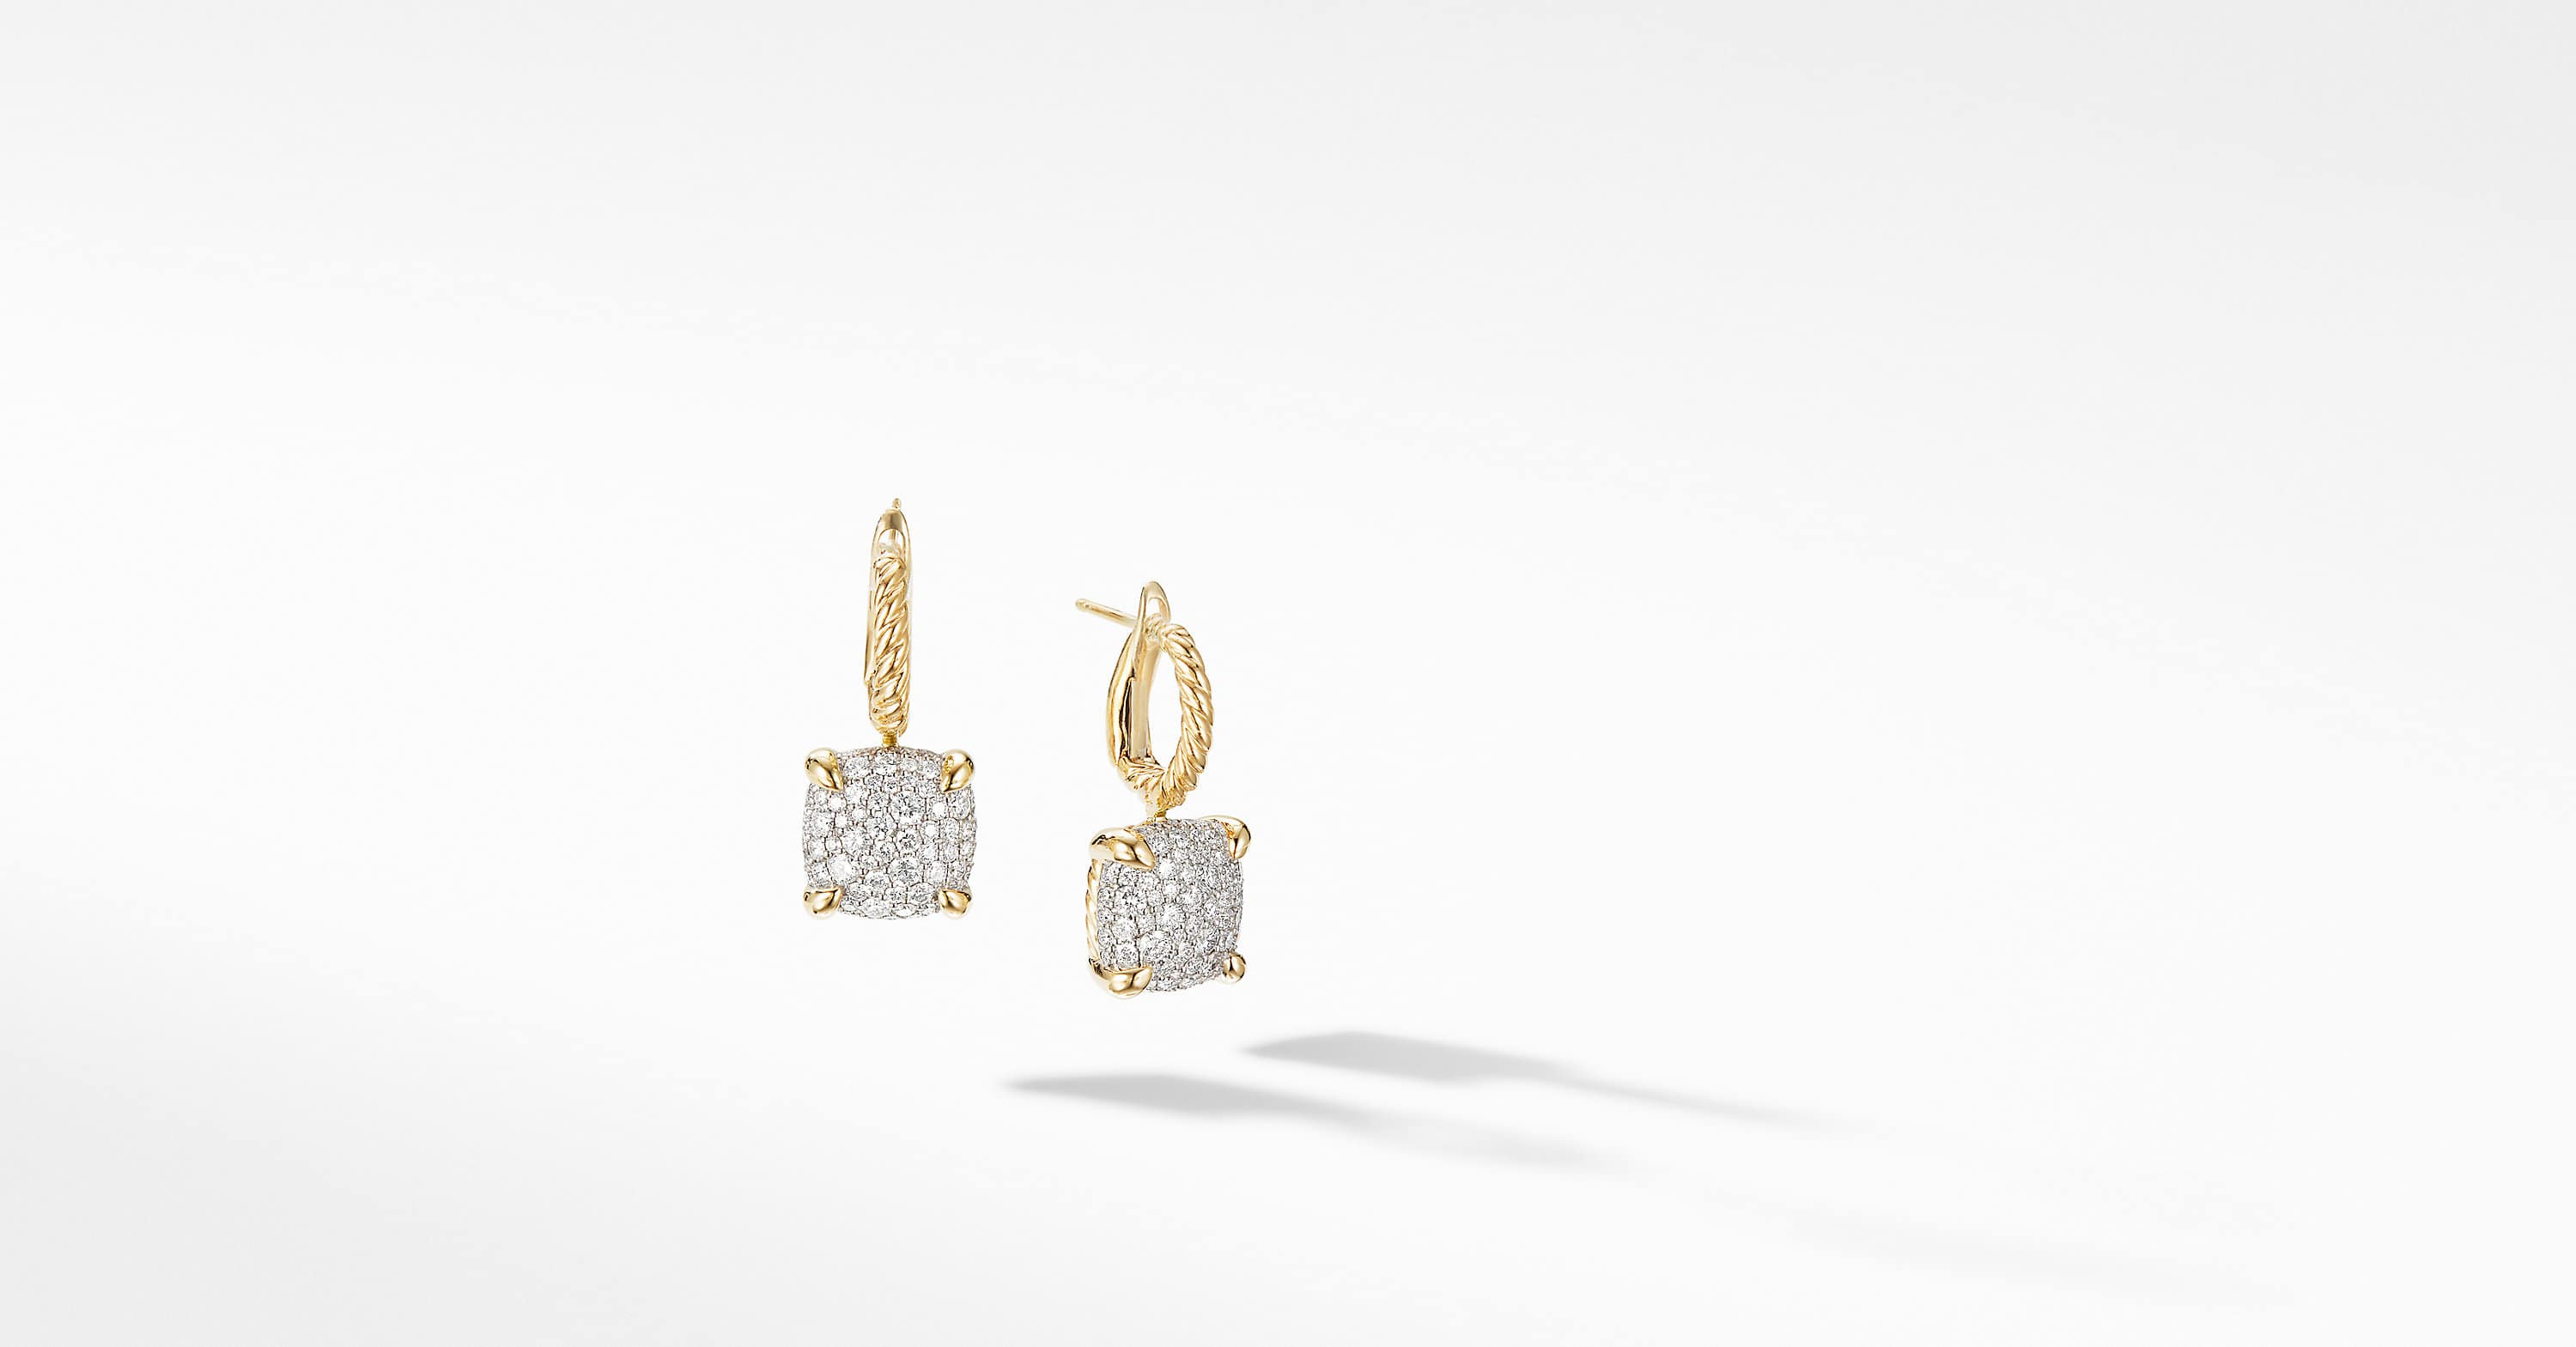 Chatelaine Drop Earrings in 18K Yellow Gold with Full Pavé